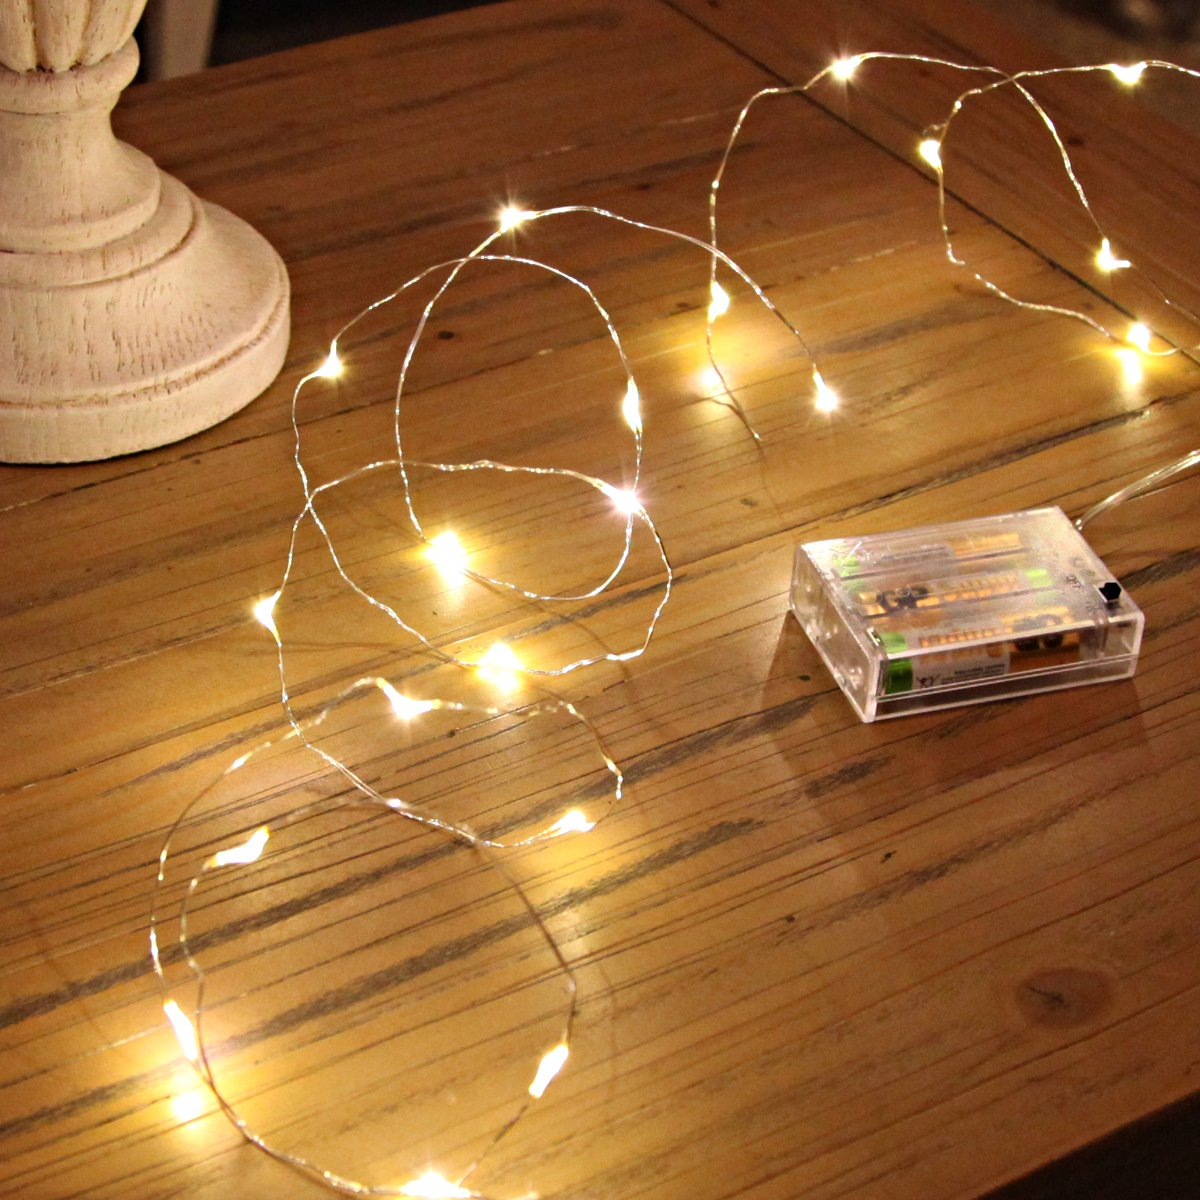 20 LED Battery Operated Micro Fairy Lights with Silver Wire by Festive Lights Available in 6 Colours (Amber)